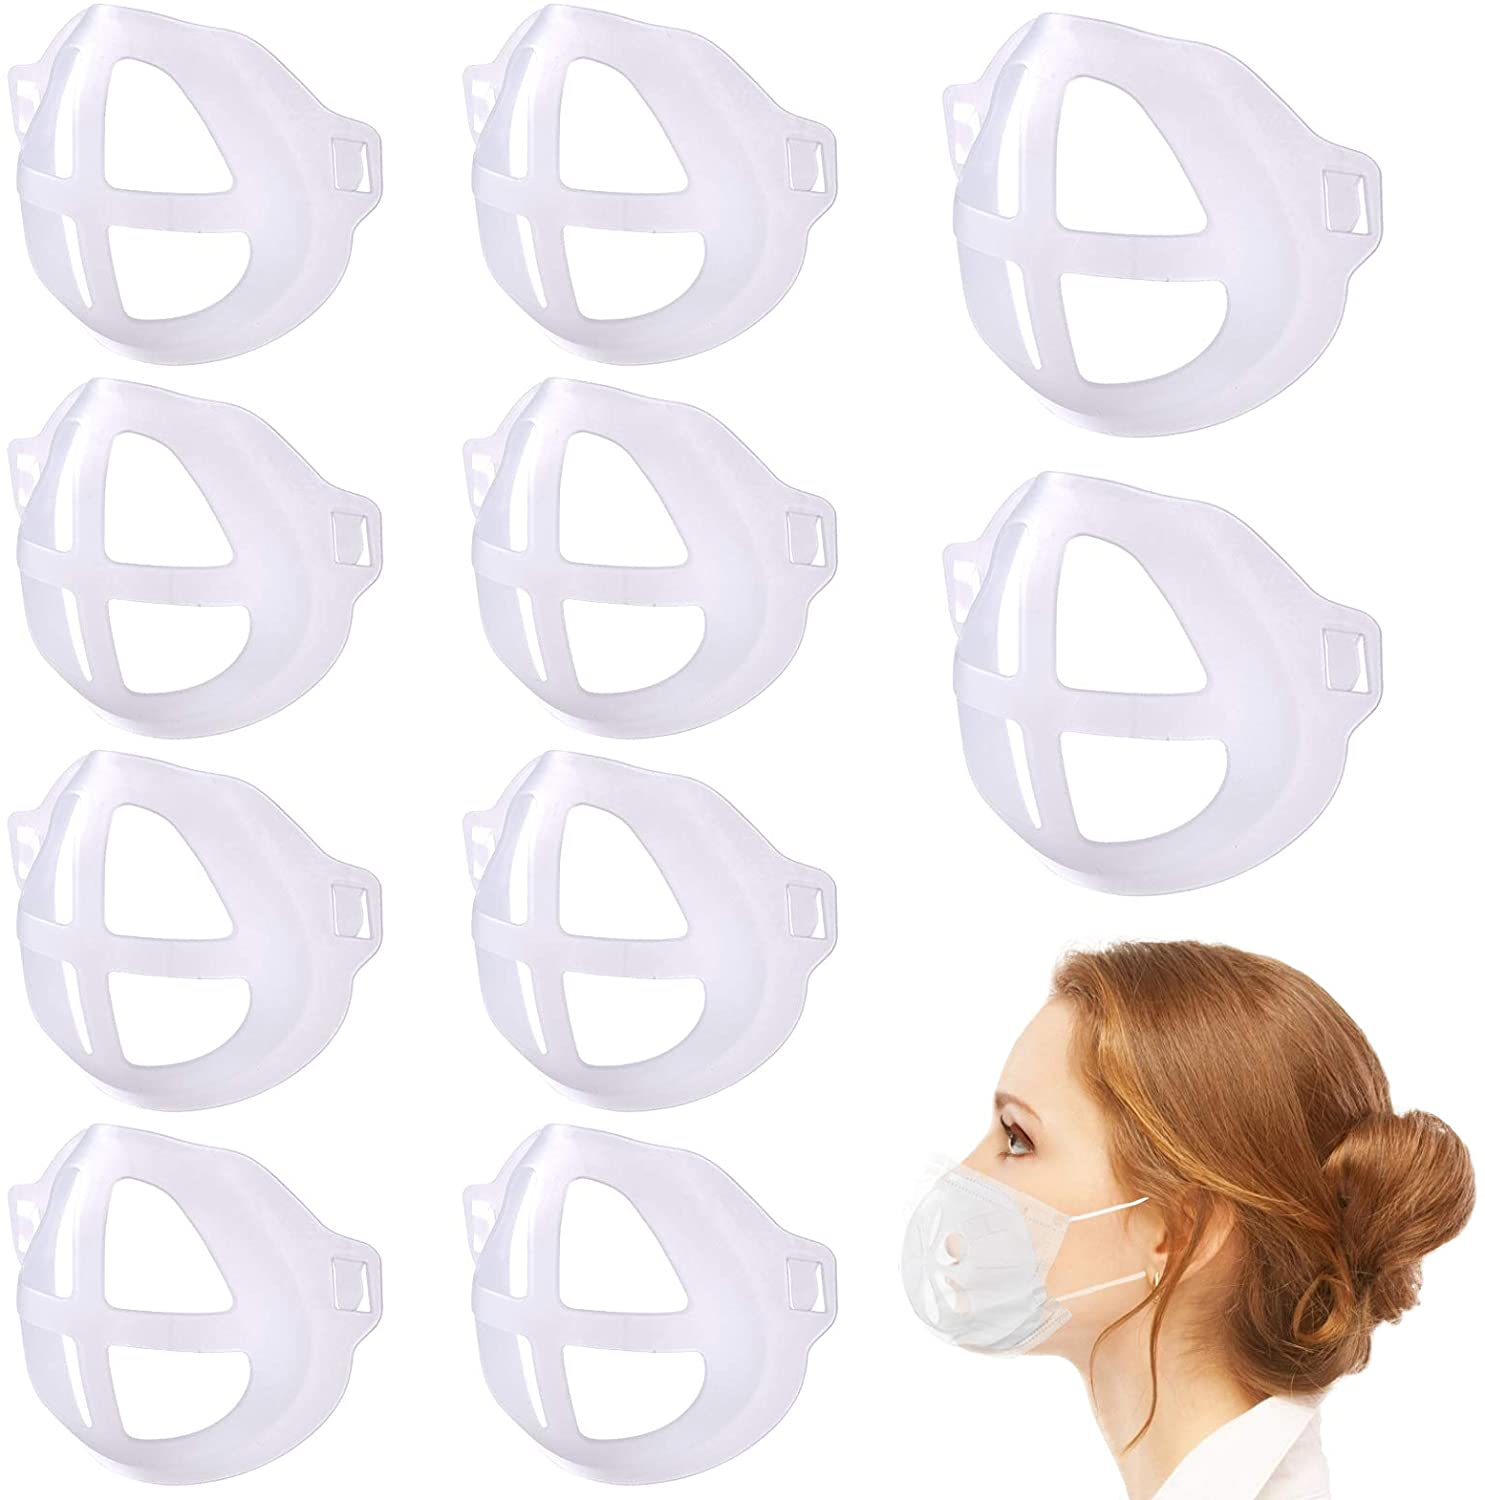 Jamal 3D Face Bracket, 3D Bracket for Support Holder Frame Nose Breathing Smoothly and Creates More Space for Breathing Ideal Makeup(10Pcs)